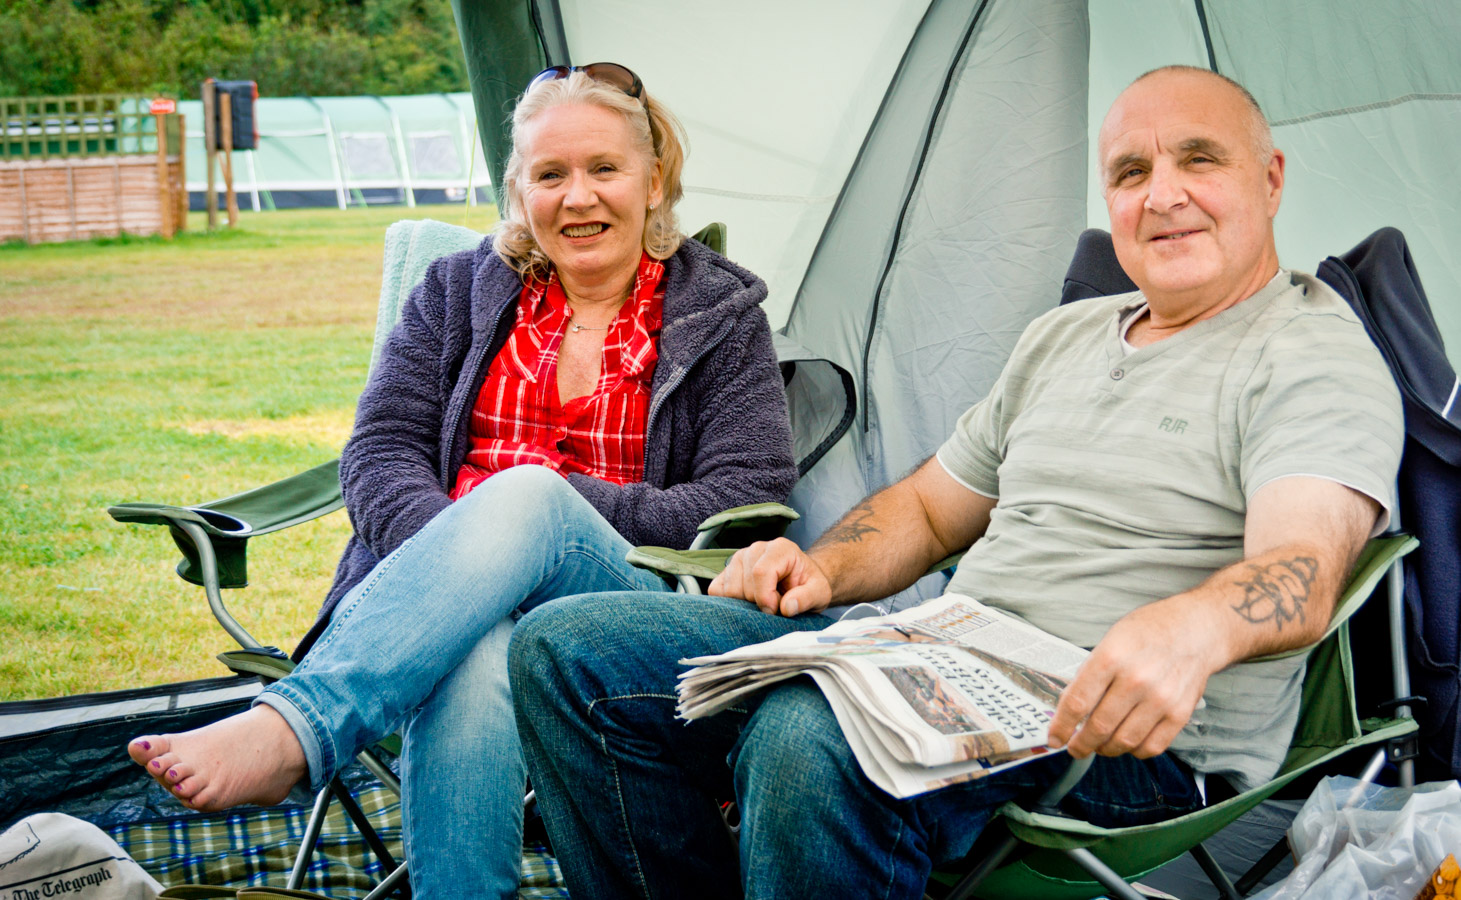 Monkton-Wyld-West-Dorset-Best-Top-Camping-Caravanning207